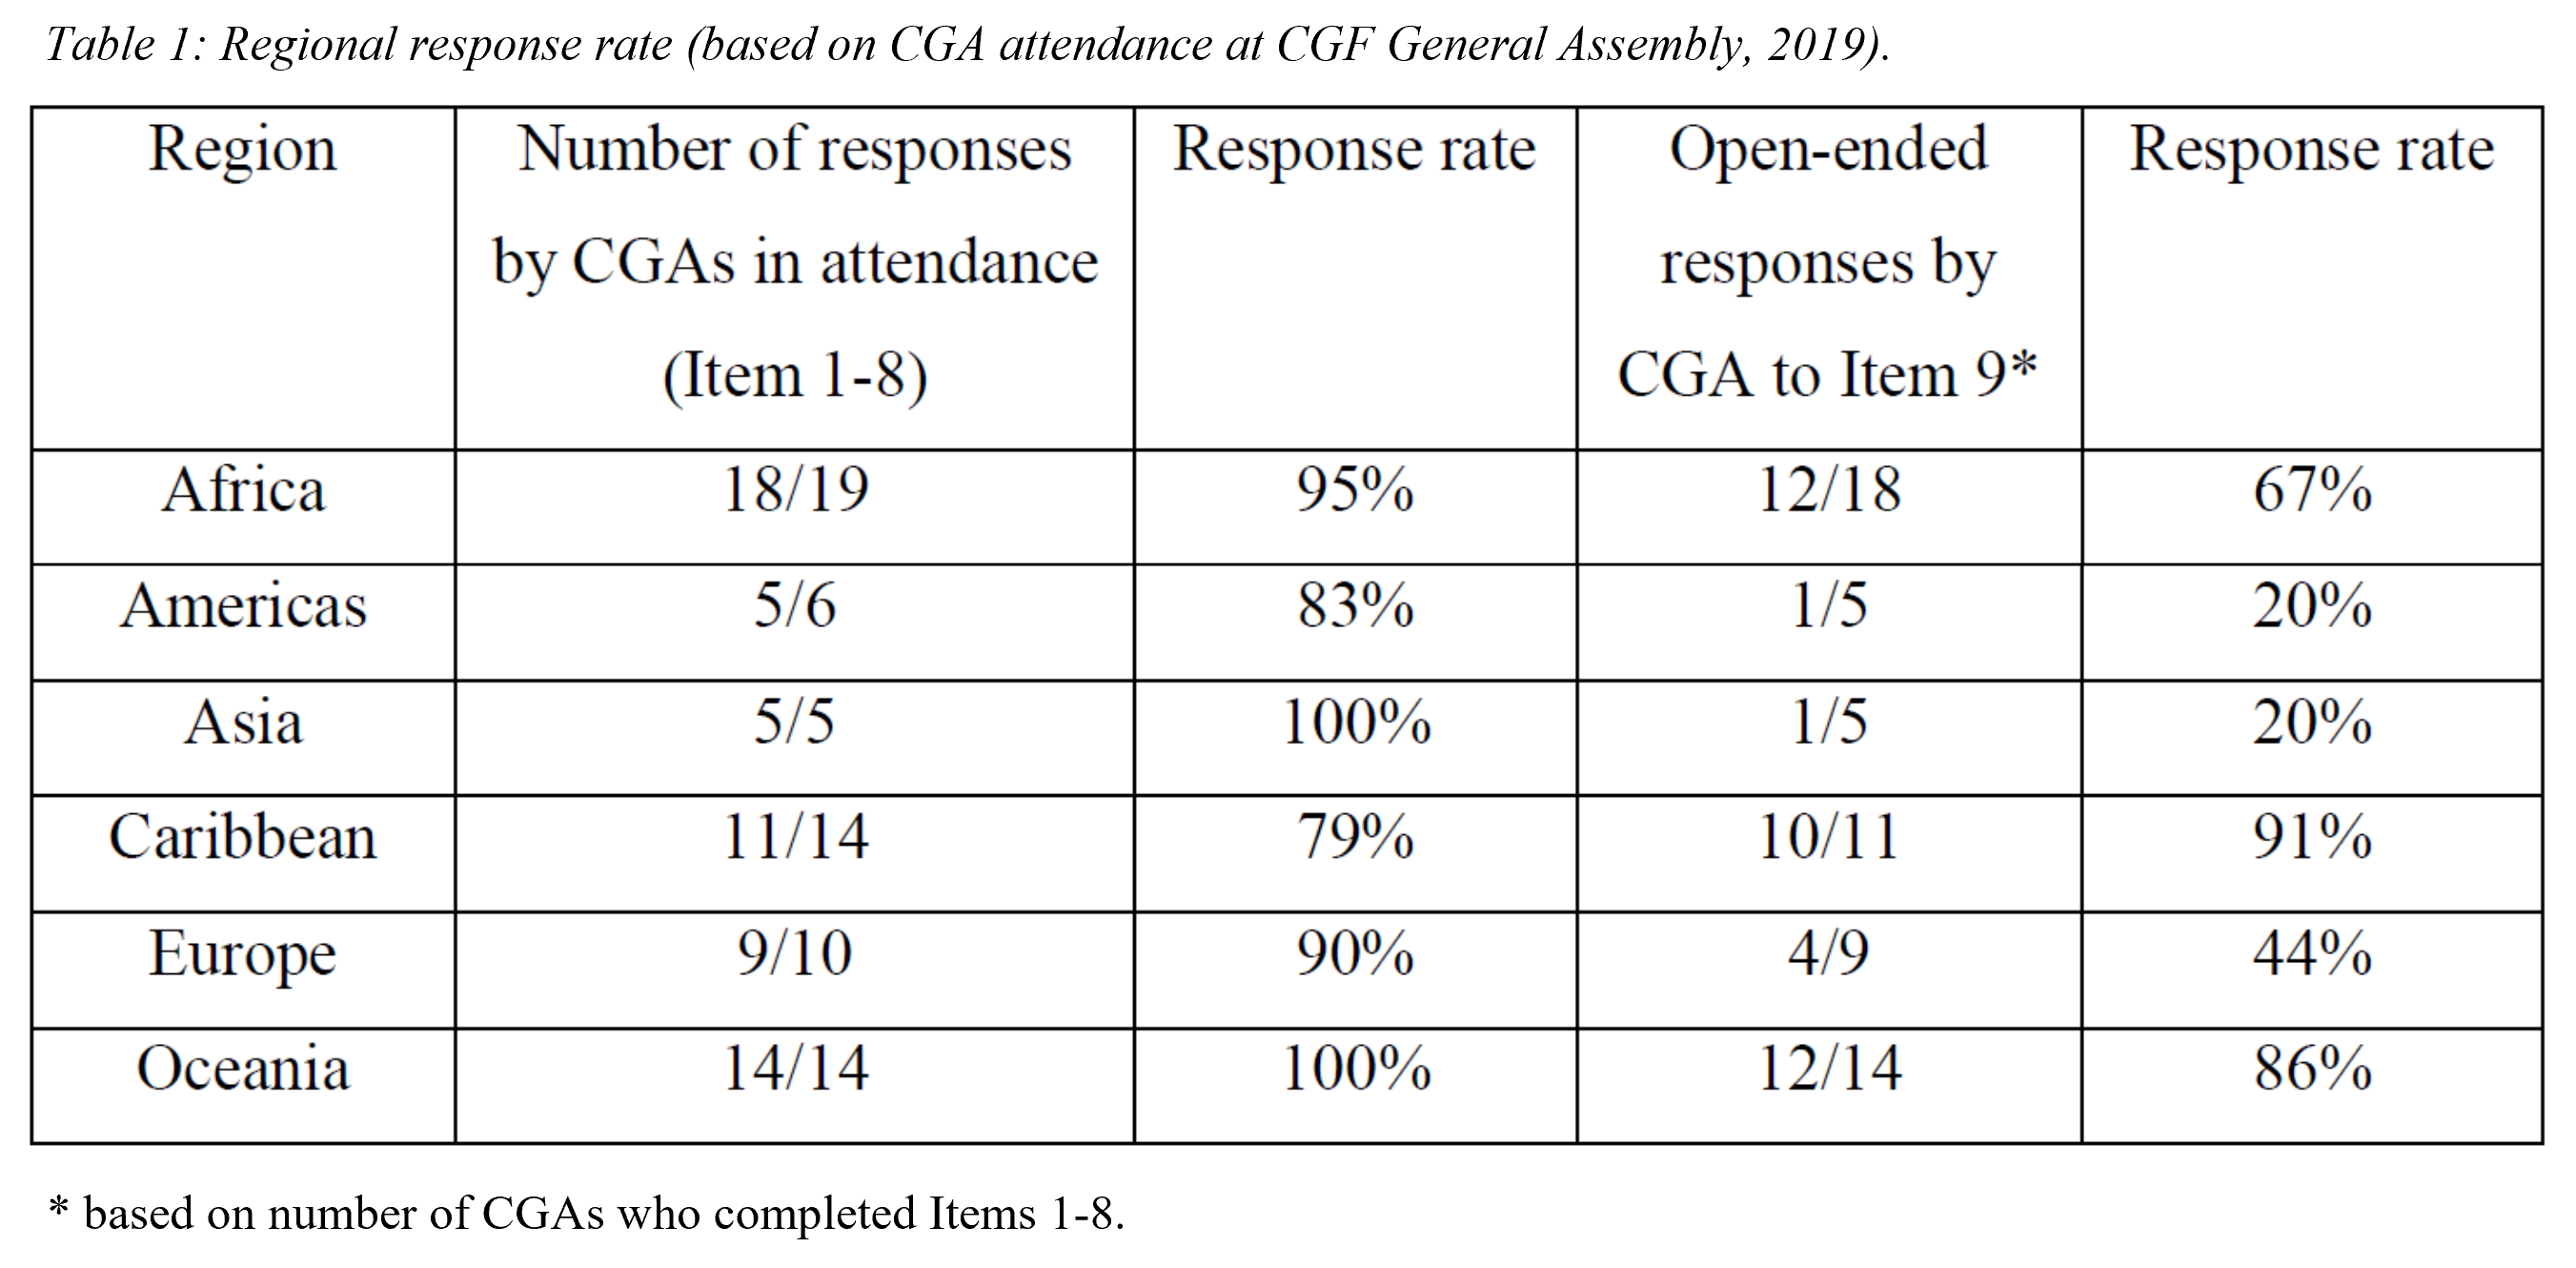 Table 1 - Regional response rate (based on CGA attendance at CGF General Assembly, 2019).